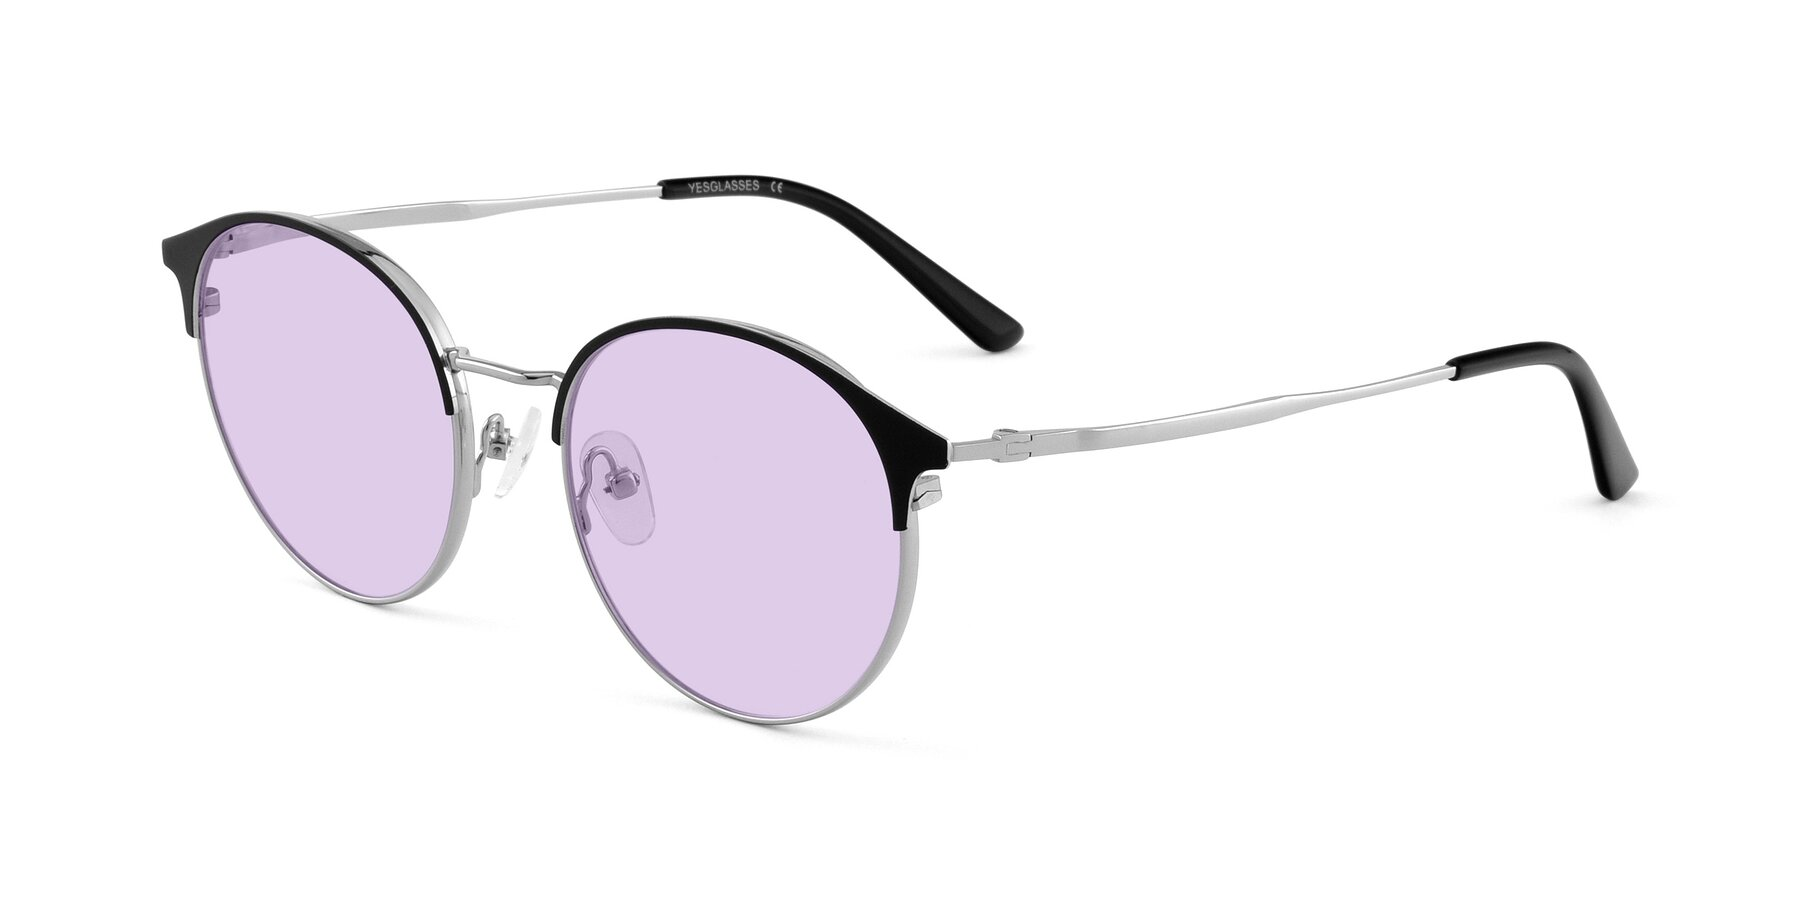 Angle of Berkley in Black-Silver with Light Purple Tinted Lenses